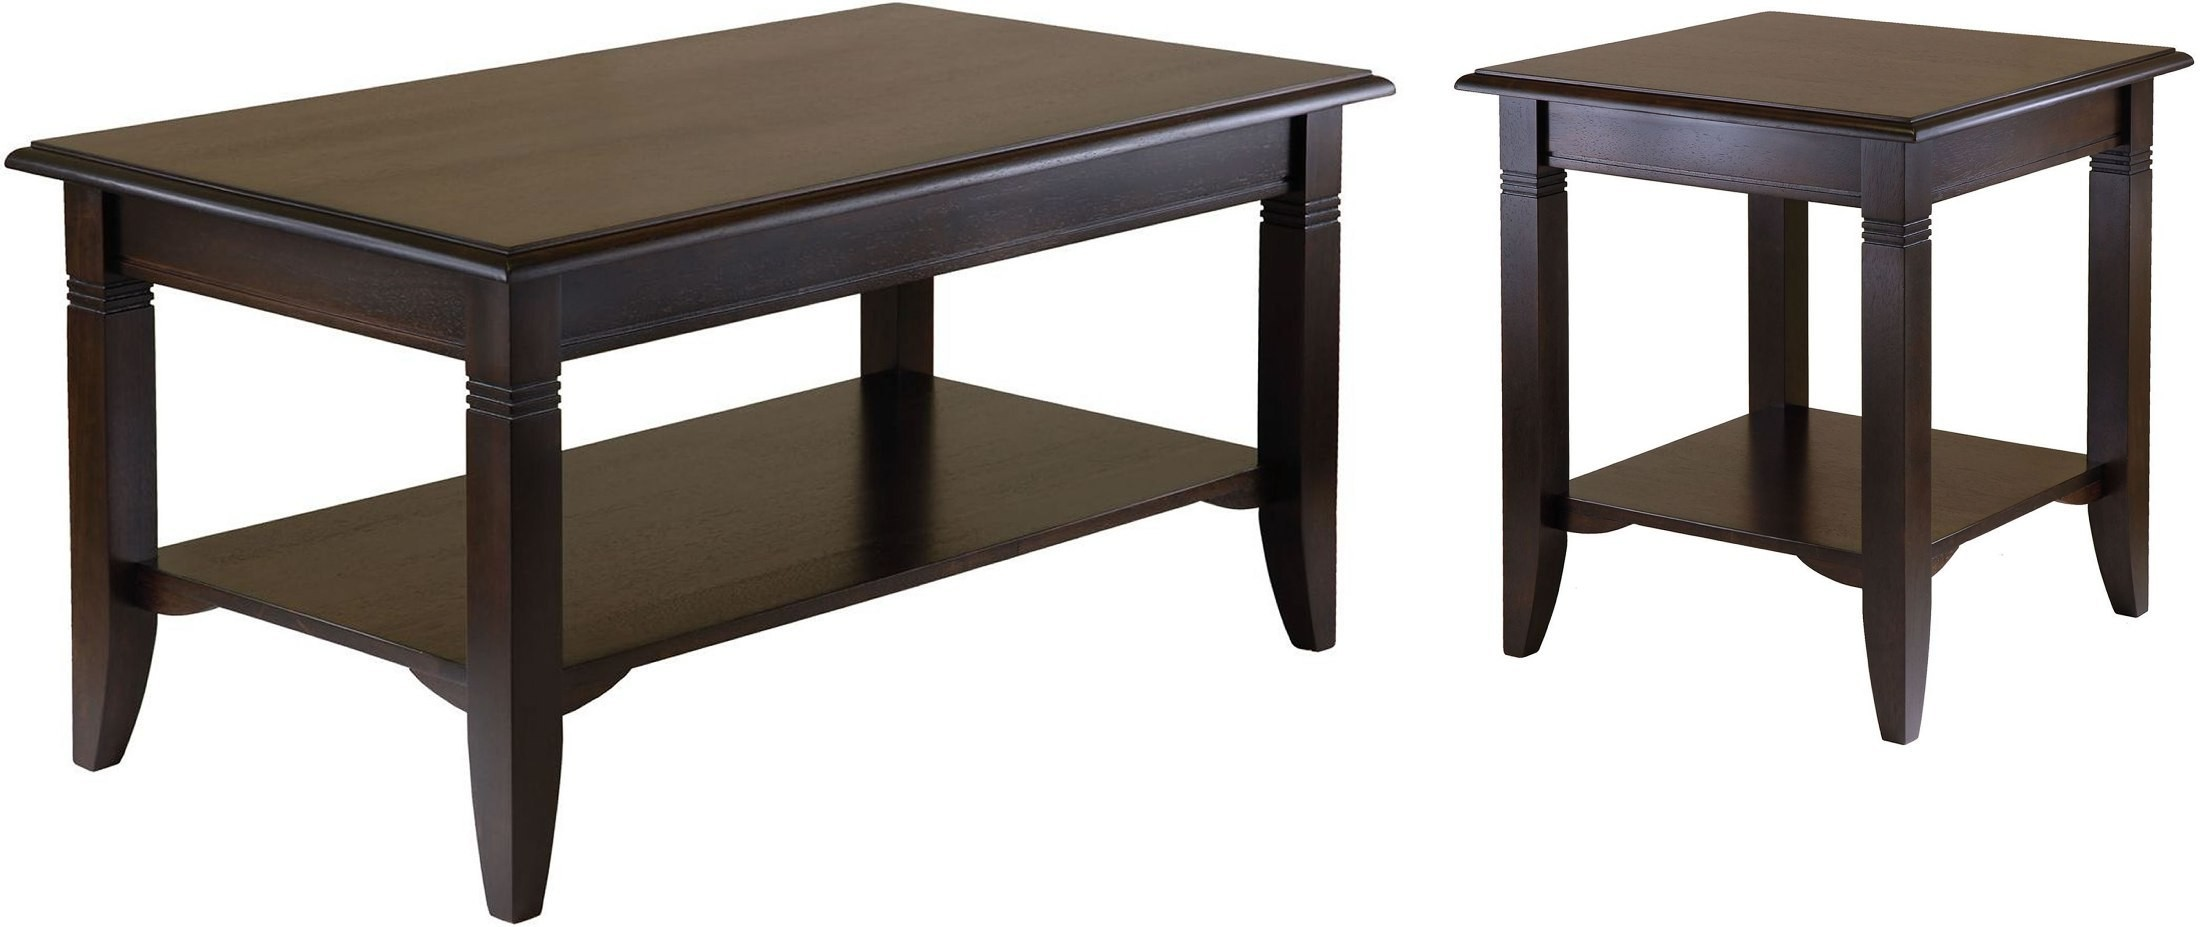 Nolan Cappuccino Occasional Table Set From Winsomewood Coleman Furniture